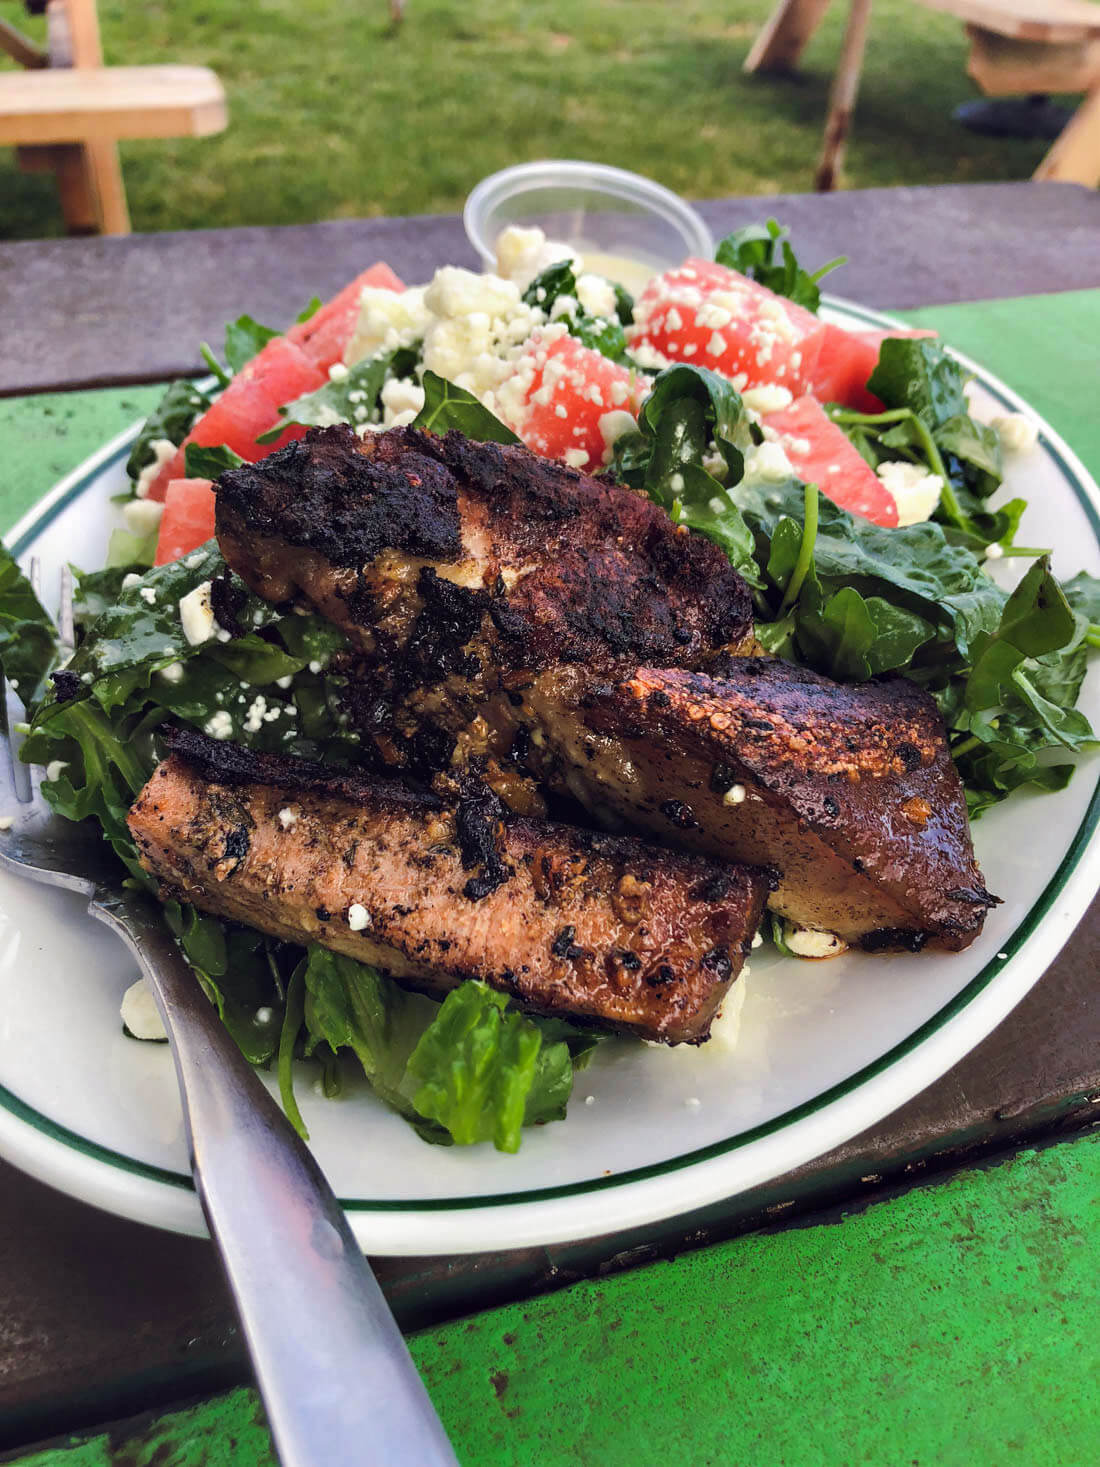 Pork Belly Salad from The Green Pig Truck